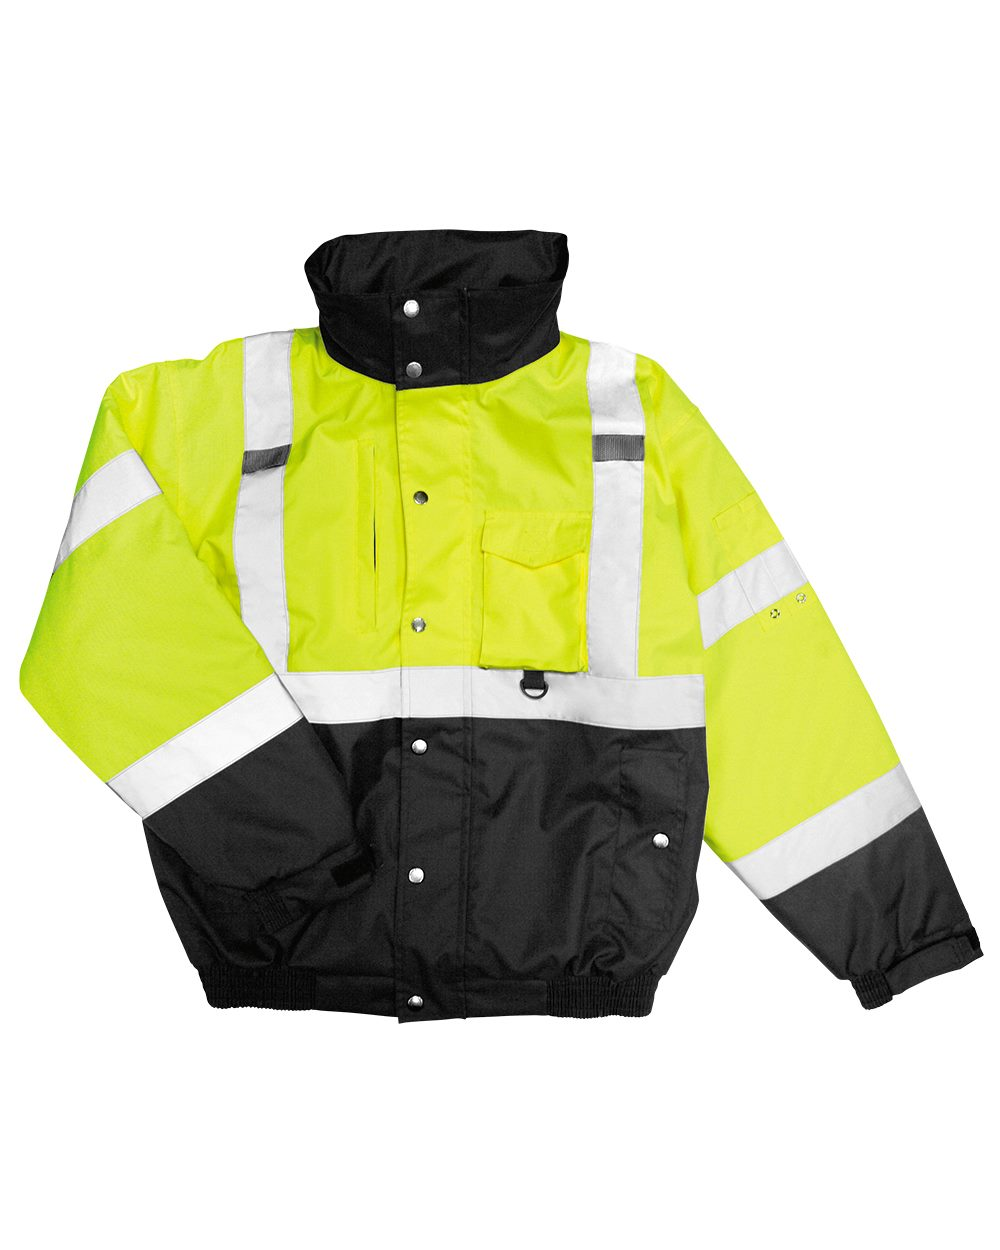 ML Kishigo - JS130, Hi Vis Wind/Water Jacket, Embroidery, Screen Printing - Logo Masters International